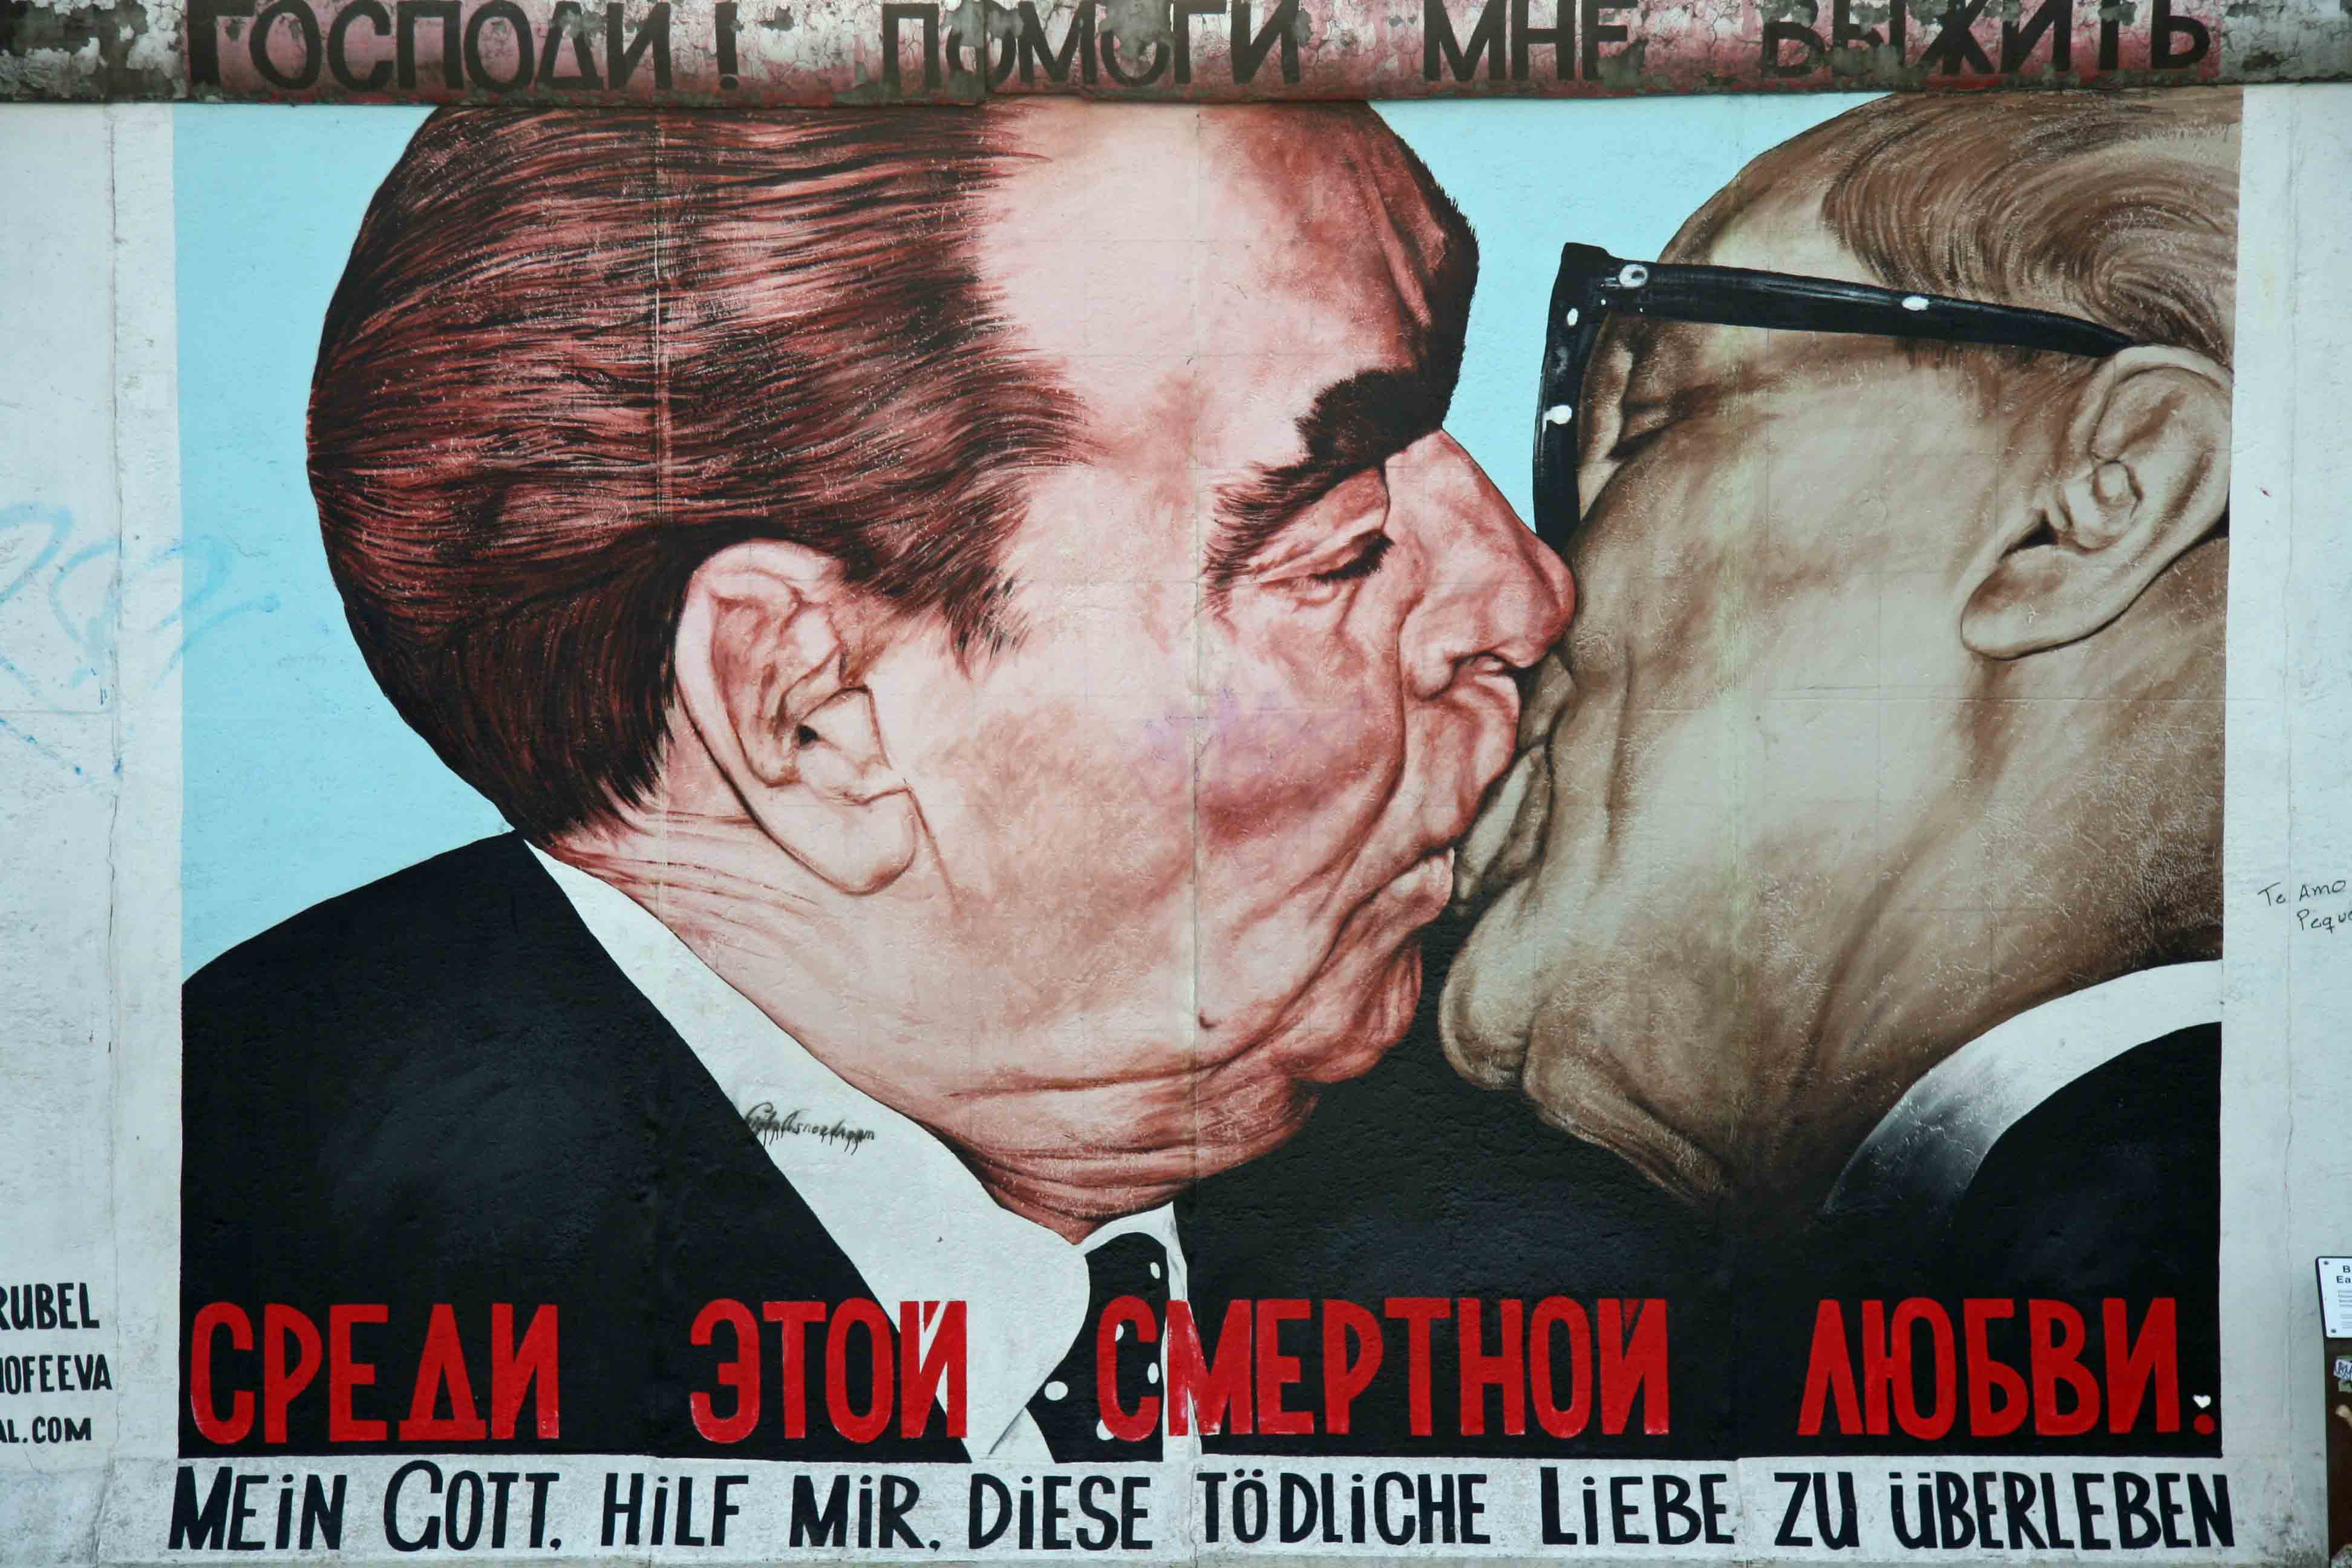 Dmitri Vrubel - Fraternal Kiss (Brezhnev and Honecker embrace) - one of the paintings on the Berlin Wall at the East Side Gallery